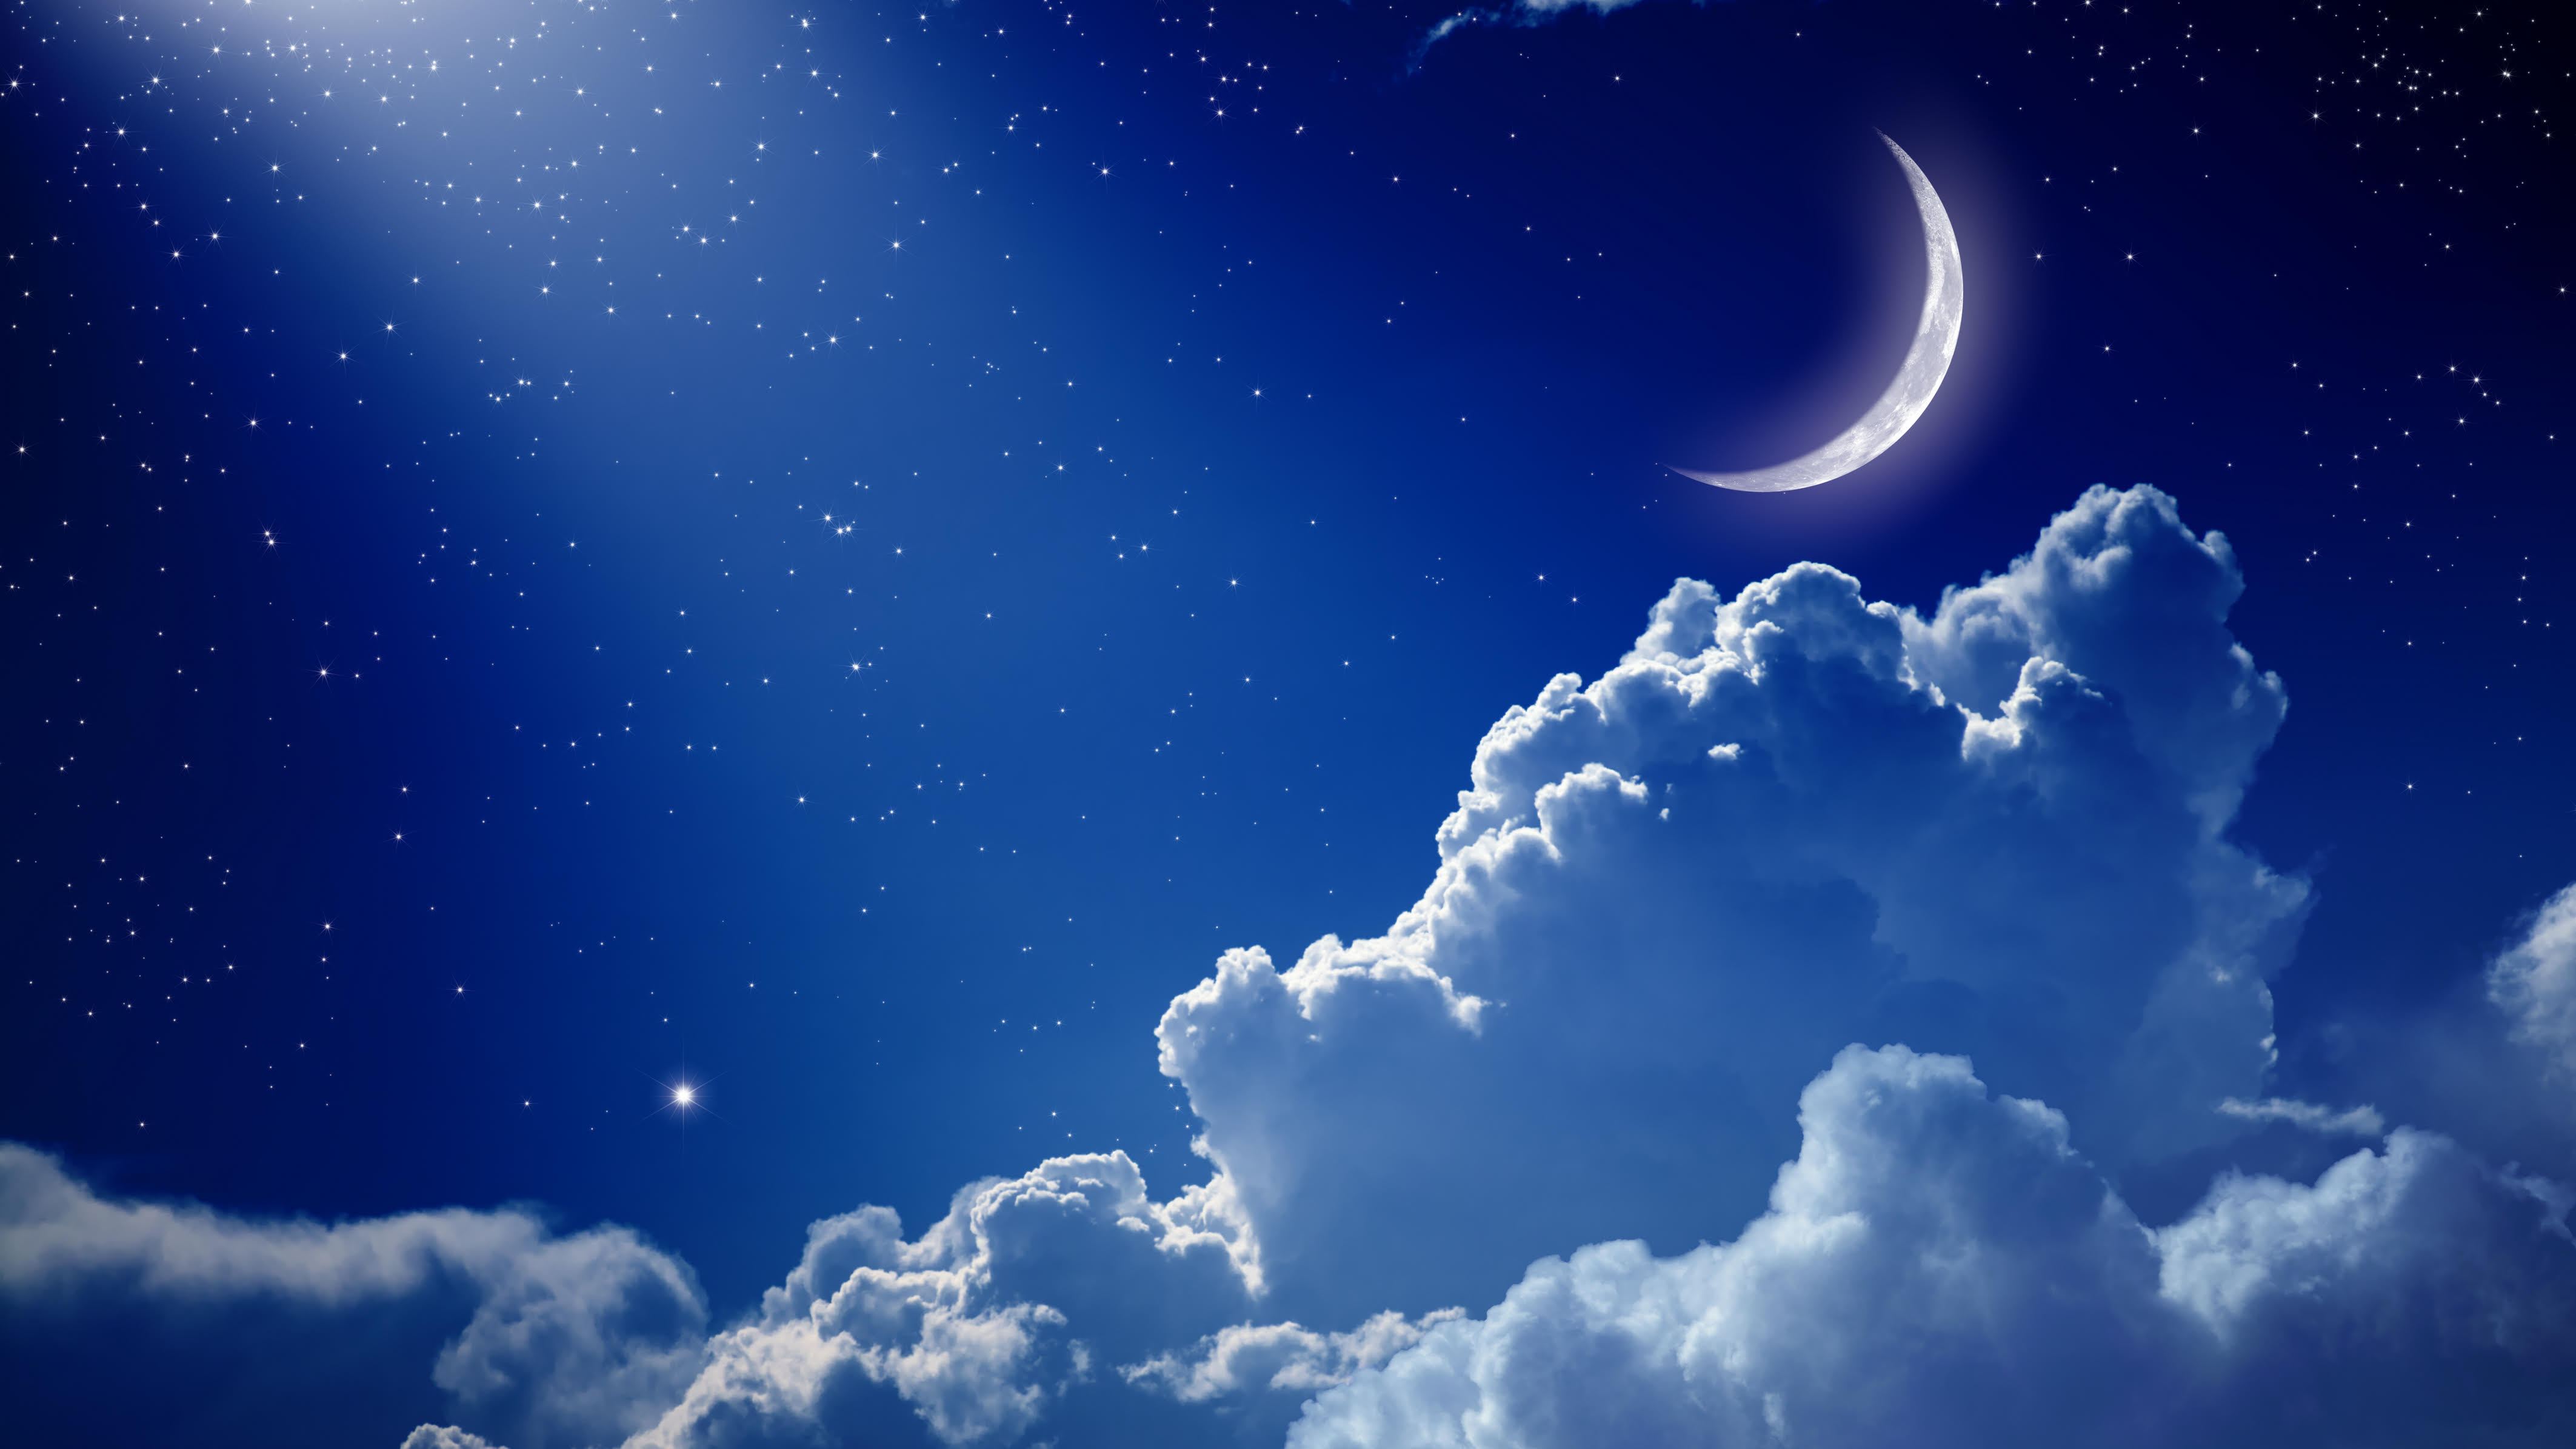 Peaceful background, blue night sky with moon